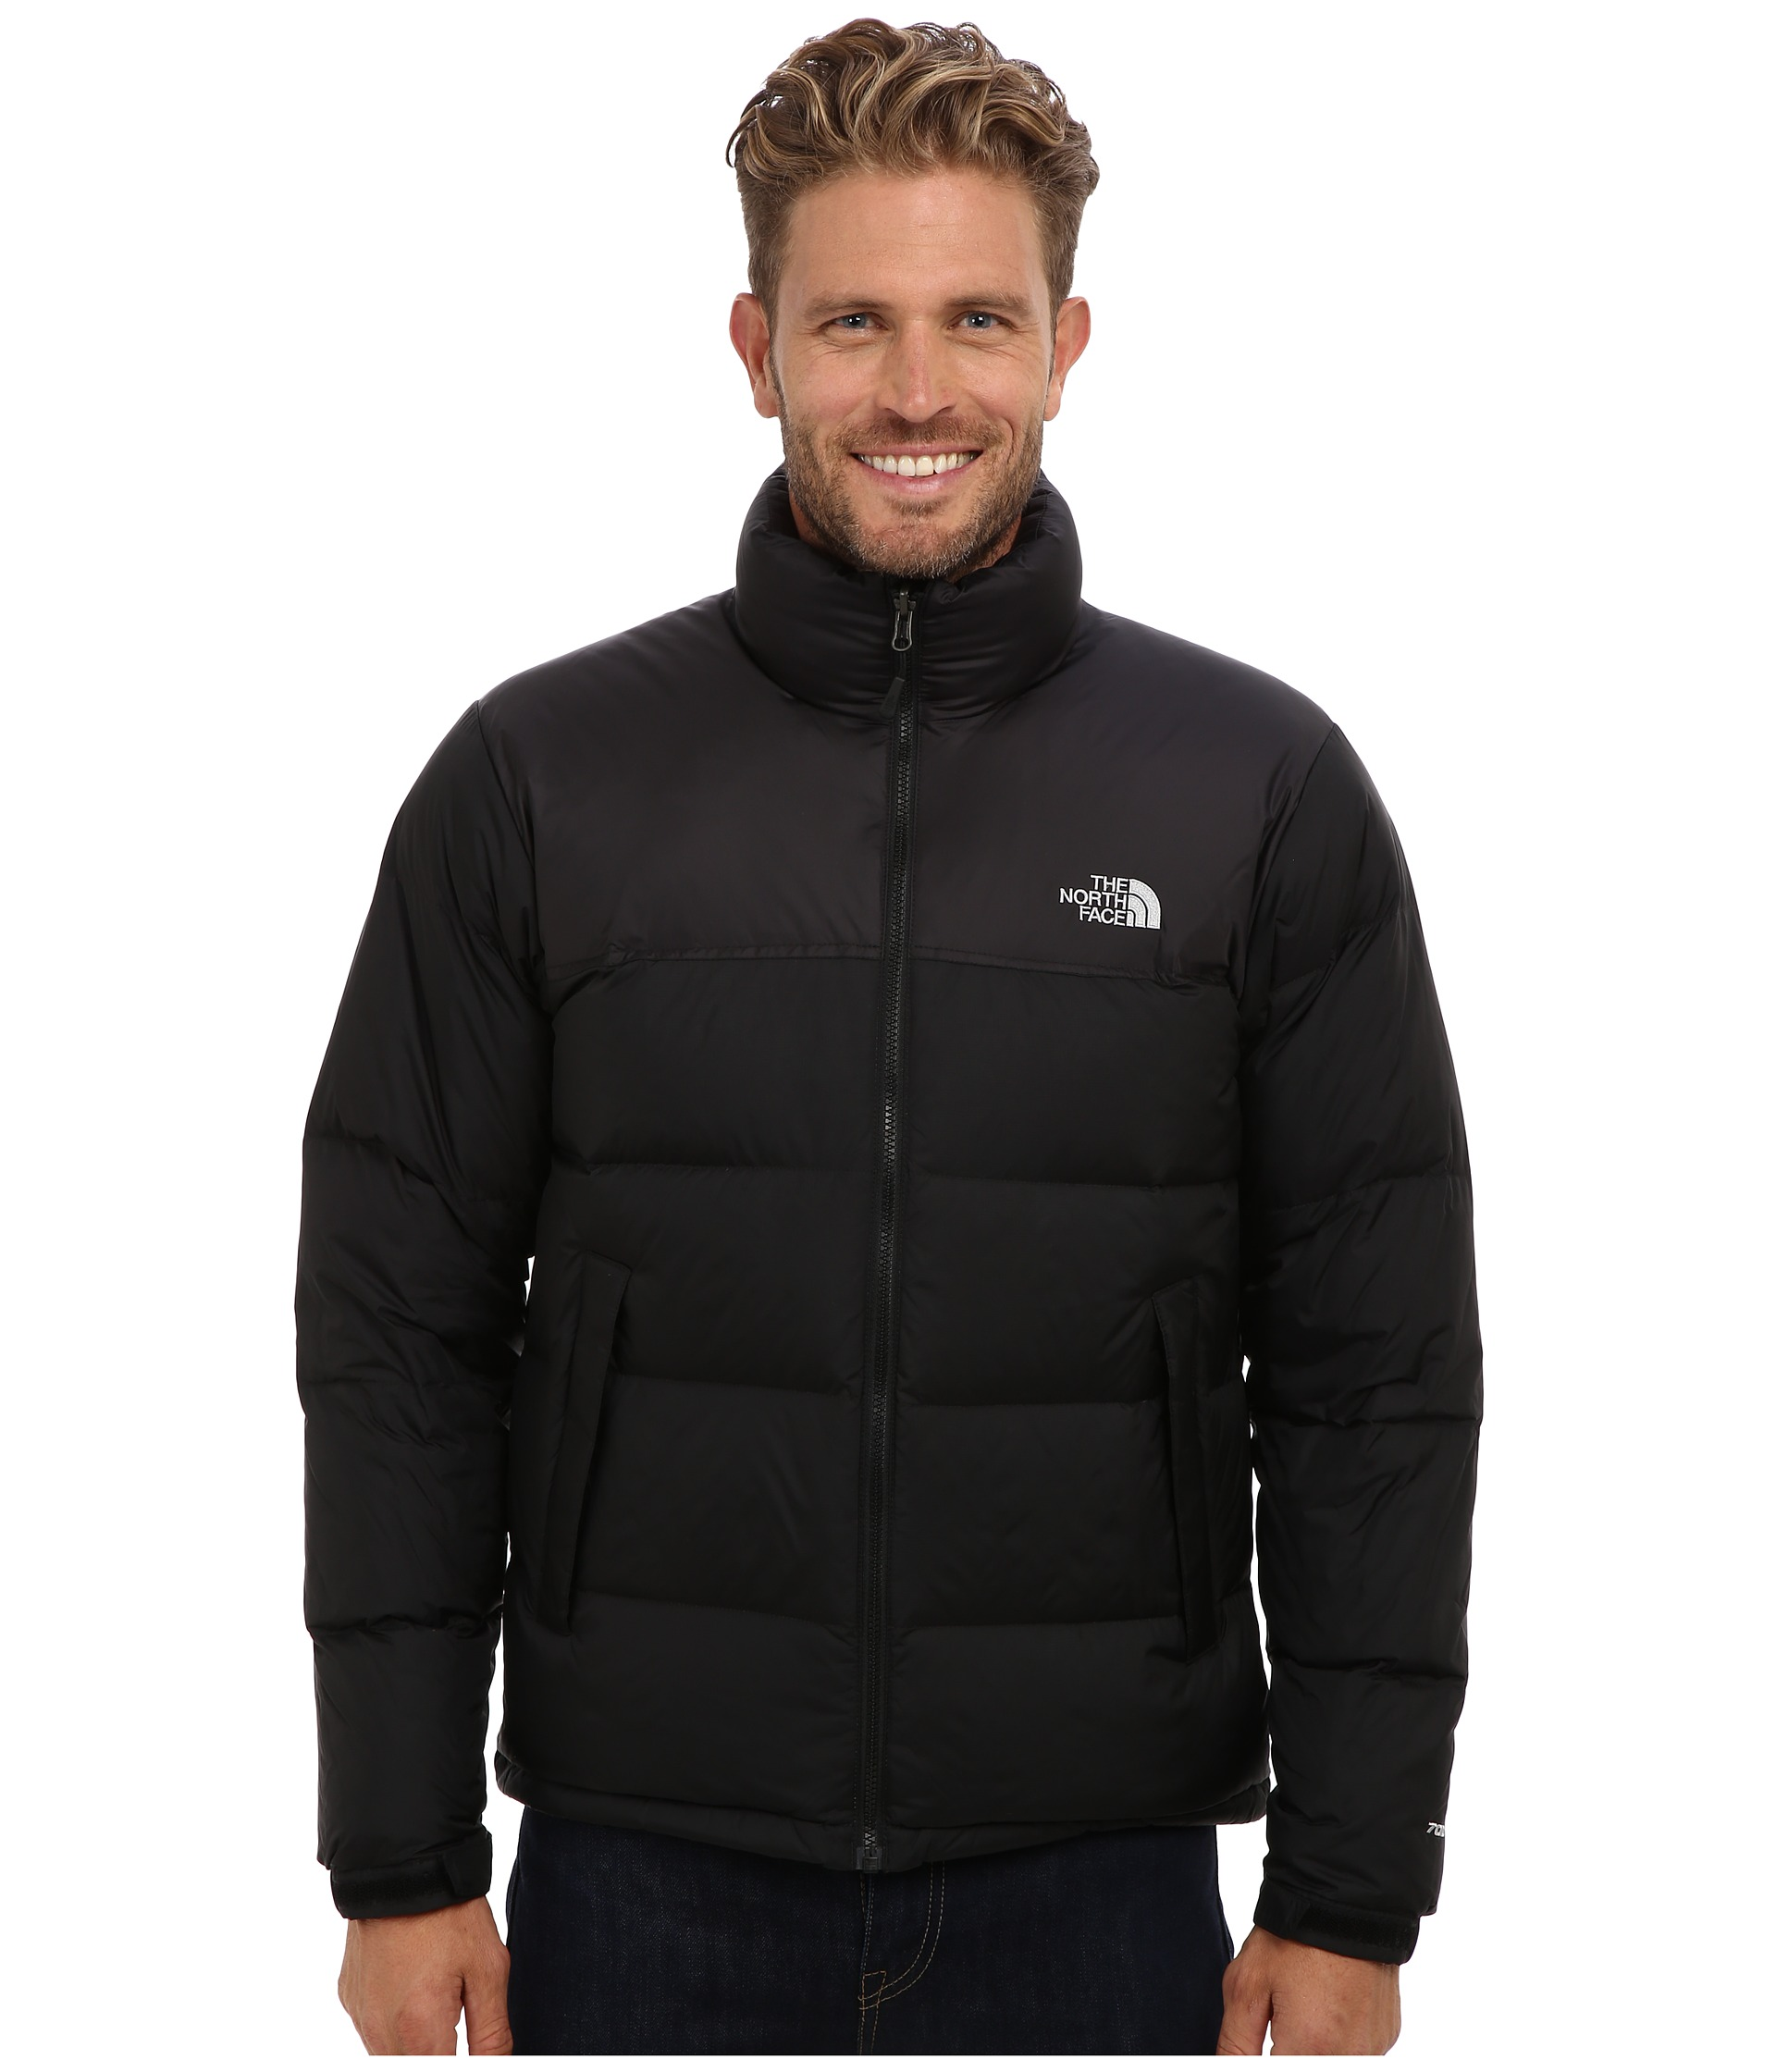 the north face nuptse jacket free shipping. Black Bedroom Furniture Sets. Home Design Ideas